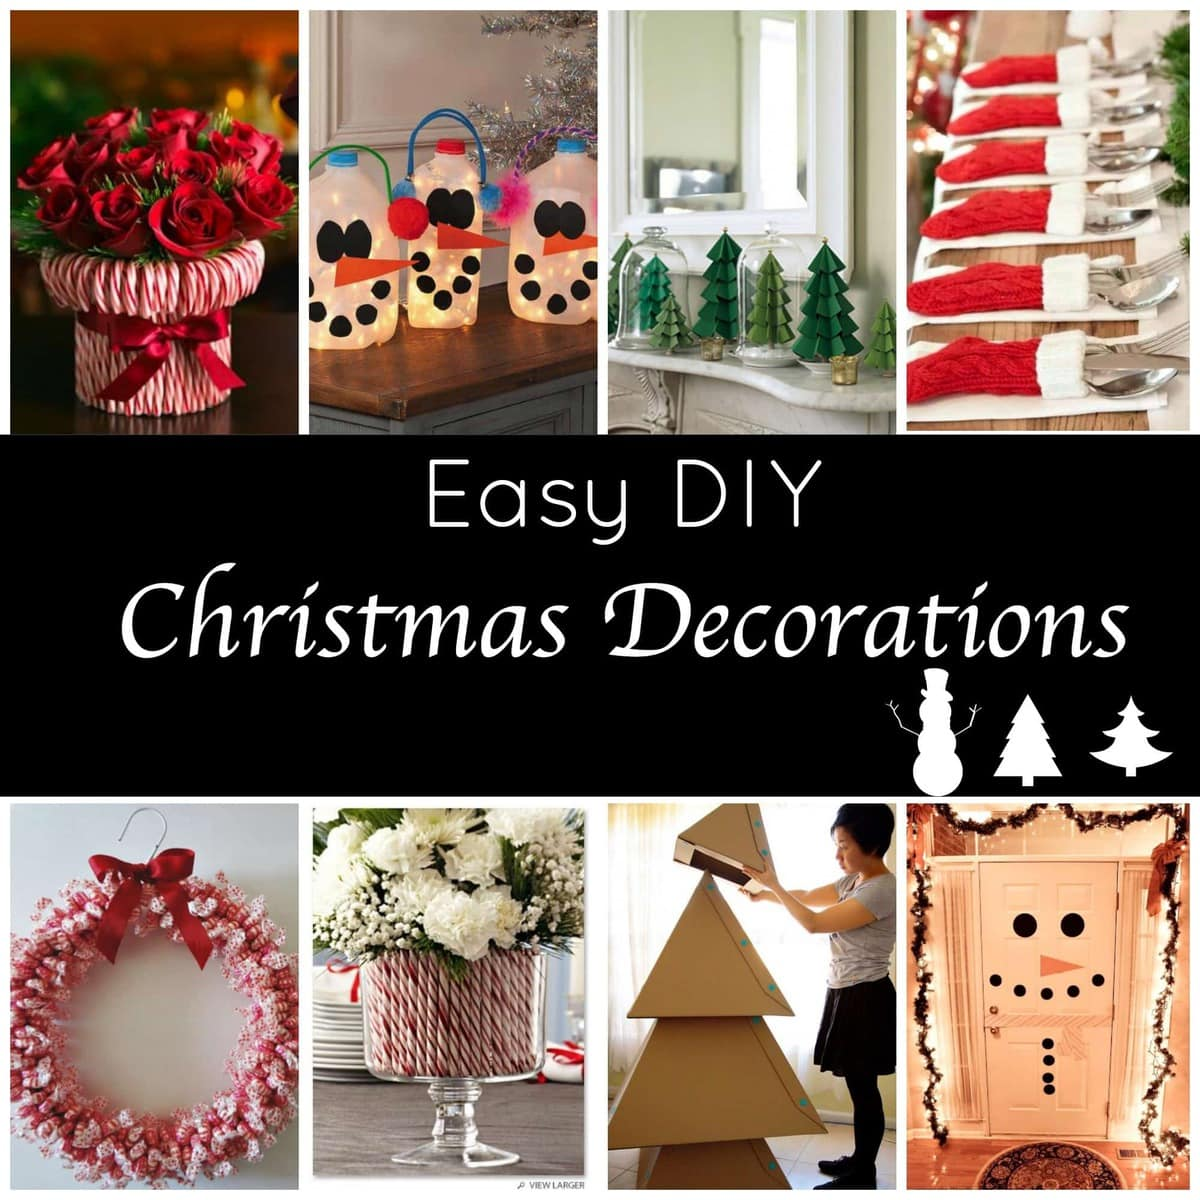 Cute and easy diy holiday decorations for a festive home for Simple home decor for christmas